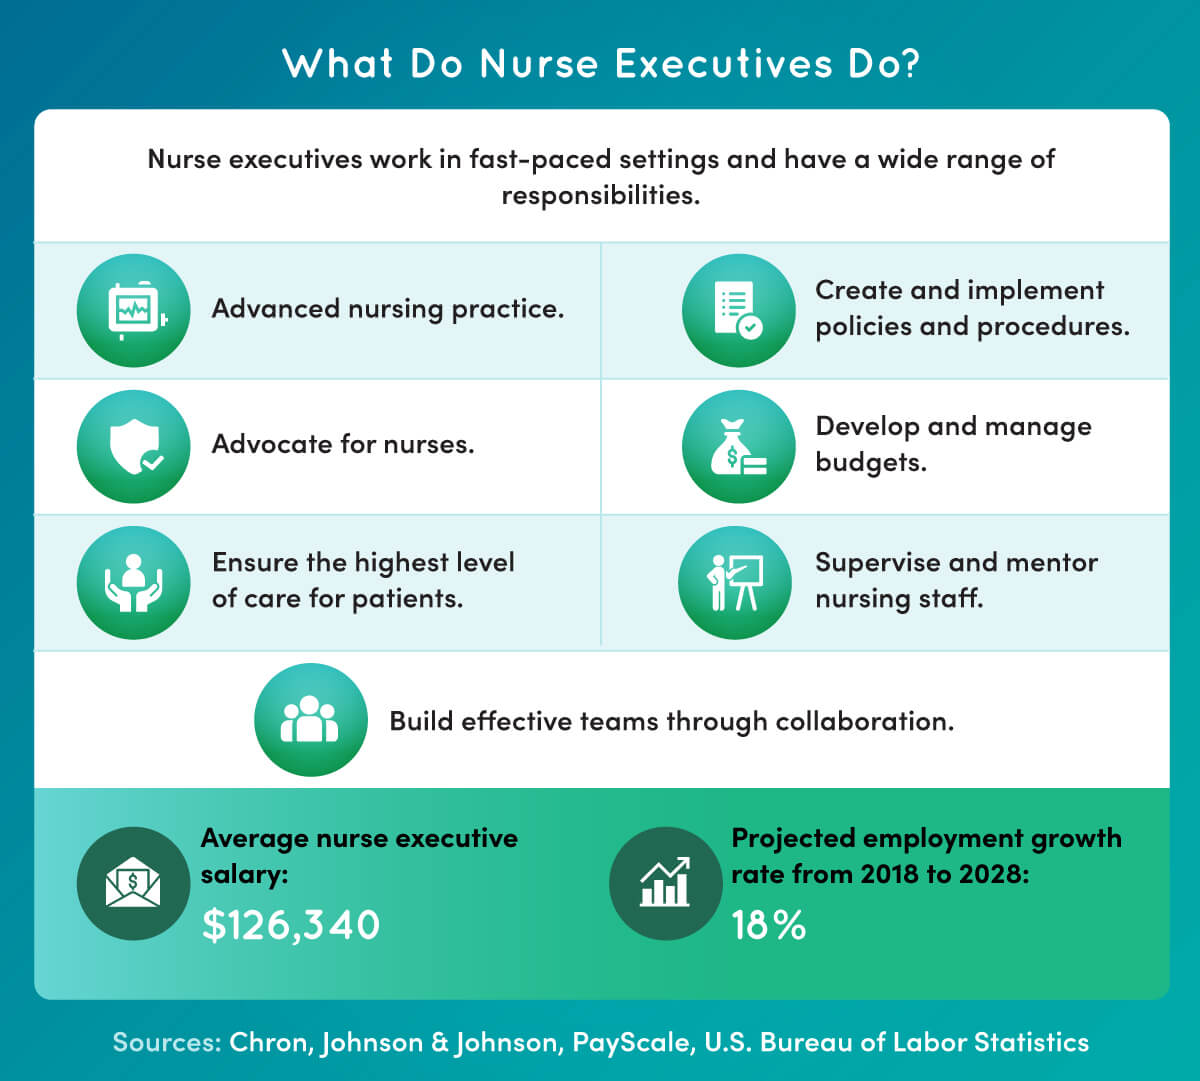 Nurse executives perform a wide range of duties, such as advocating for nurses, ensuring the highest level of patient care, managing budgets and mentoring nursing staff.